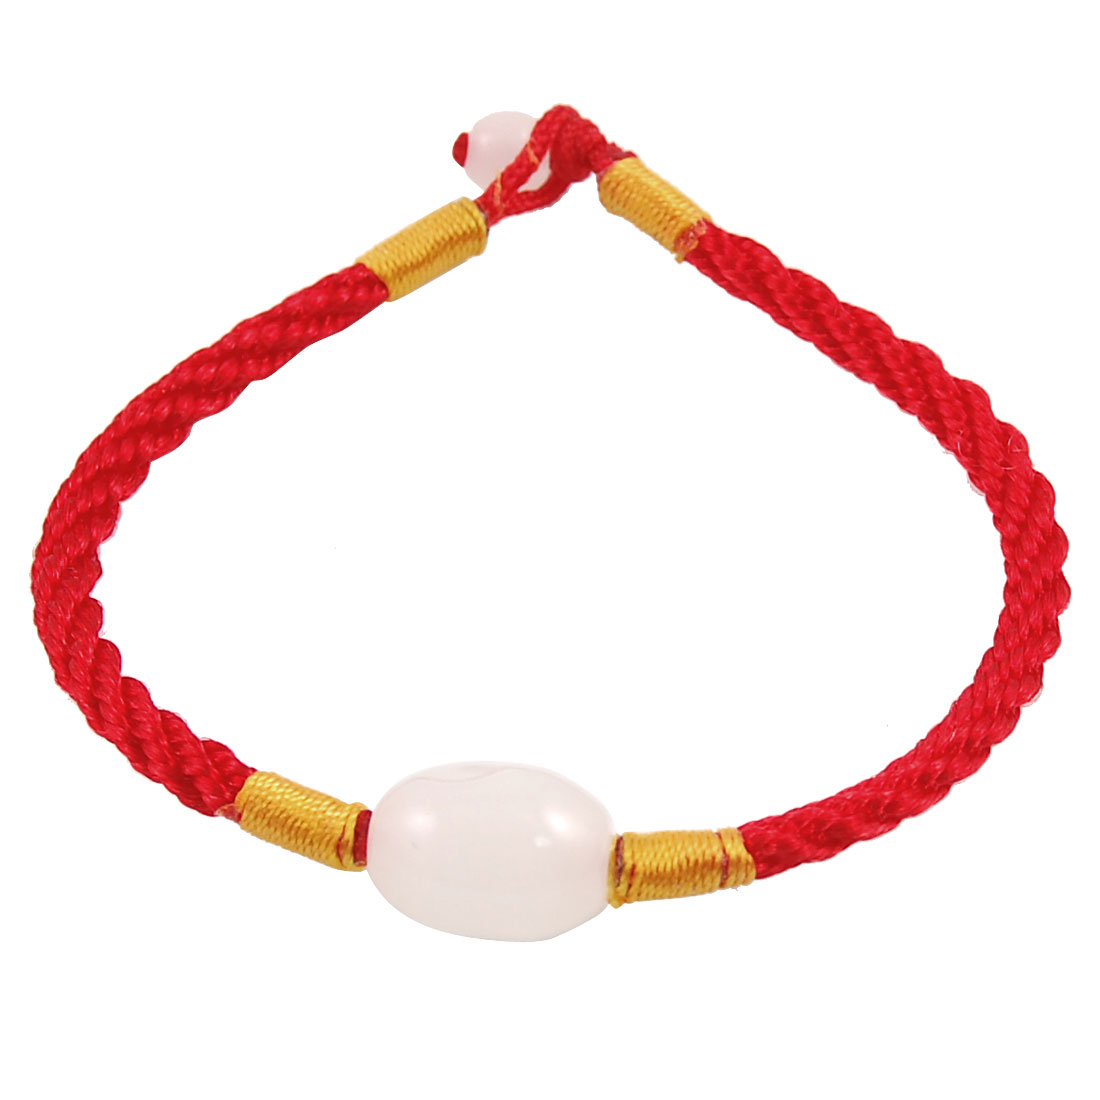 Red Knitted Cord Plastic White Bead Decor Wrist Bracelet